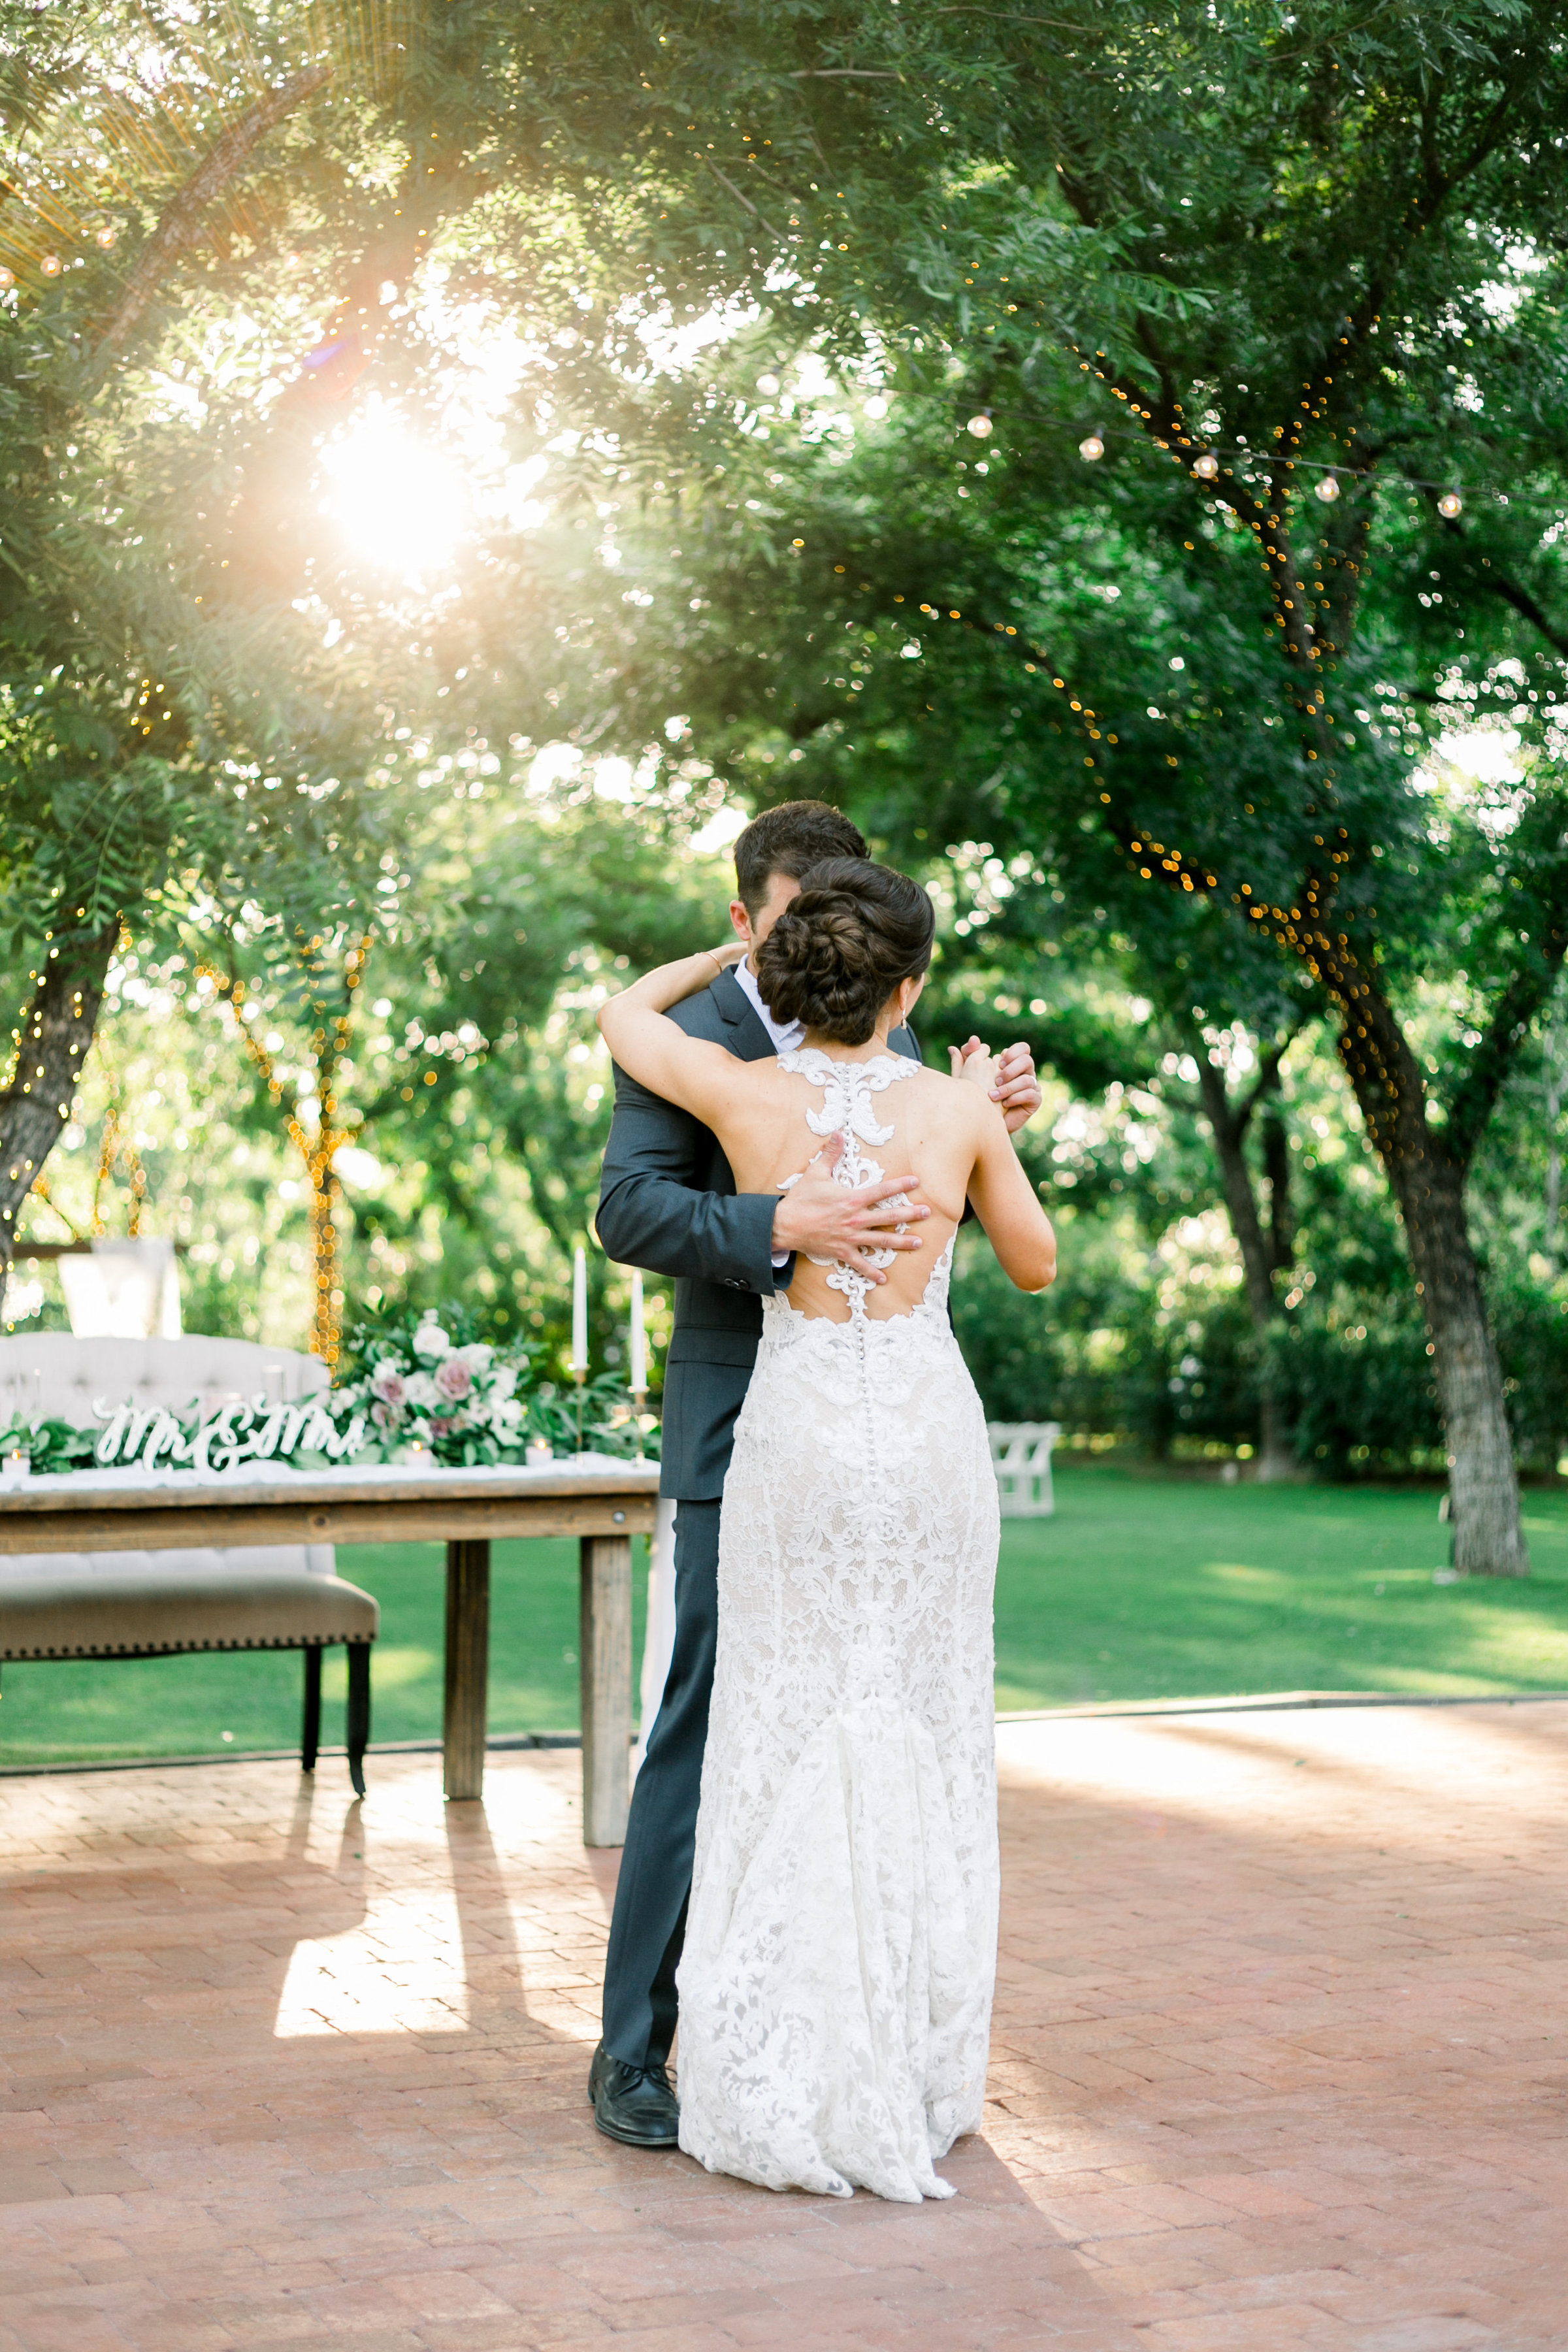 Karlie Colleen Photography - Venue At The Grove - Arizona Wedding - Maggie & Grant -99